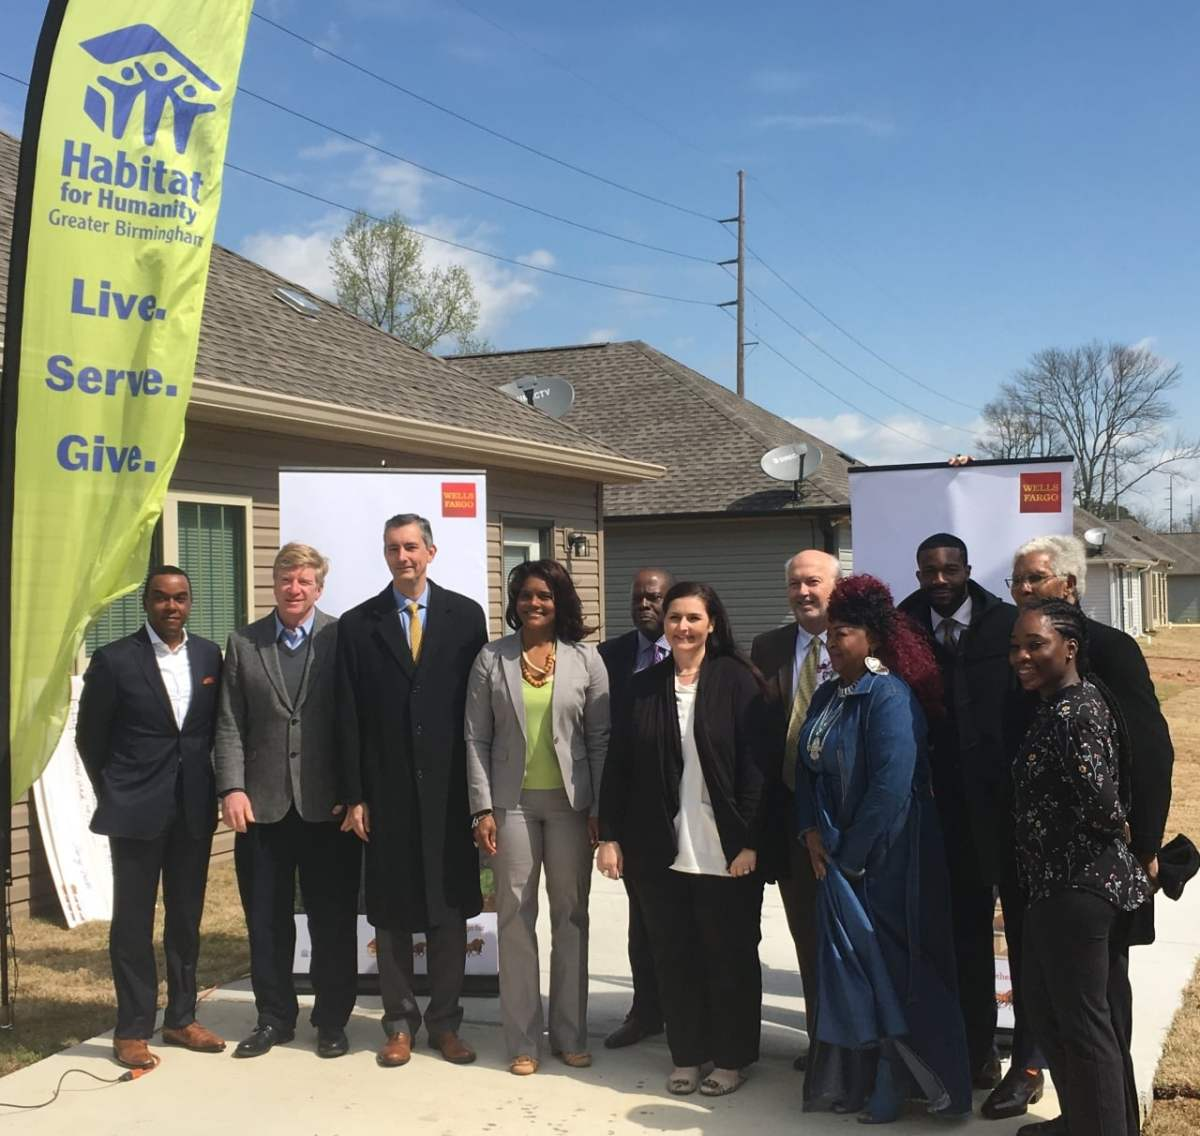 Wells Fargo donates $100,000 to revitalize Birmingham communities